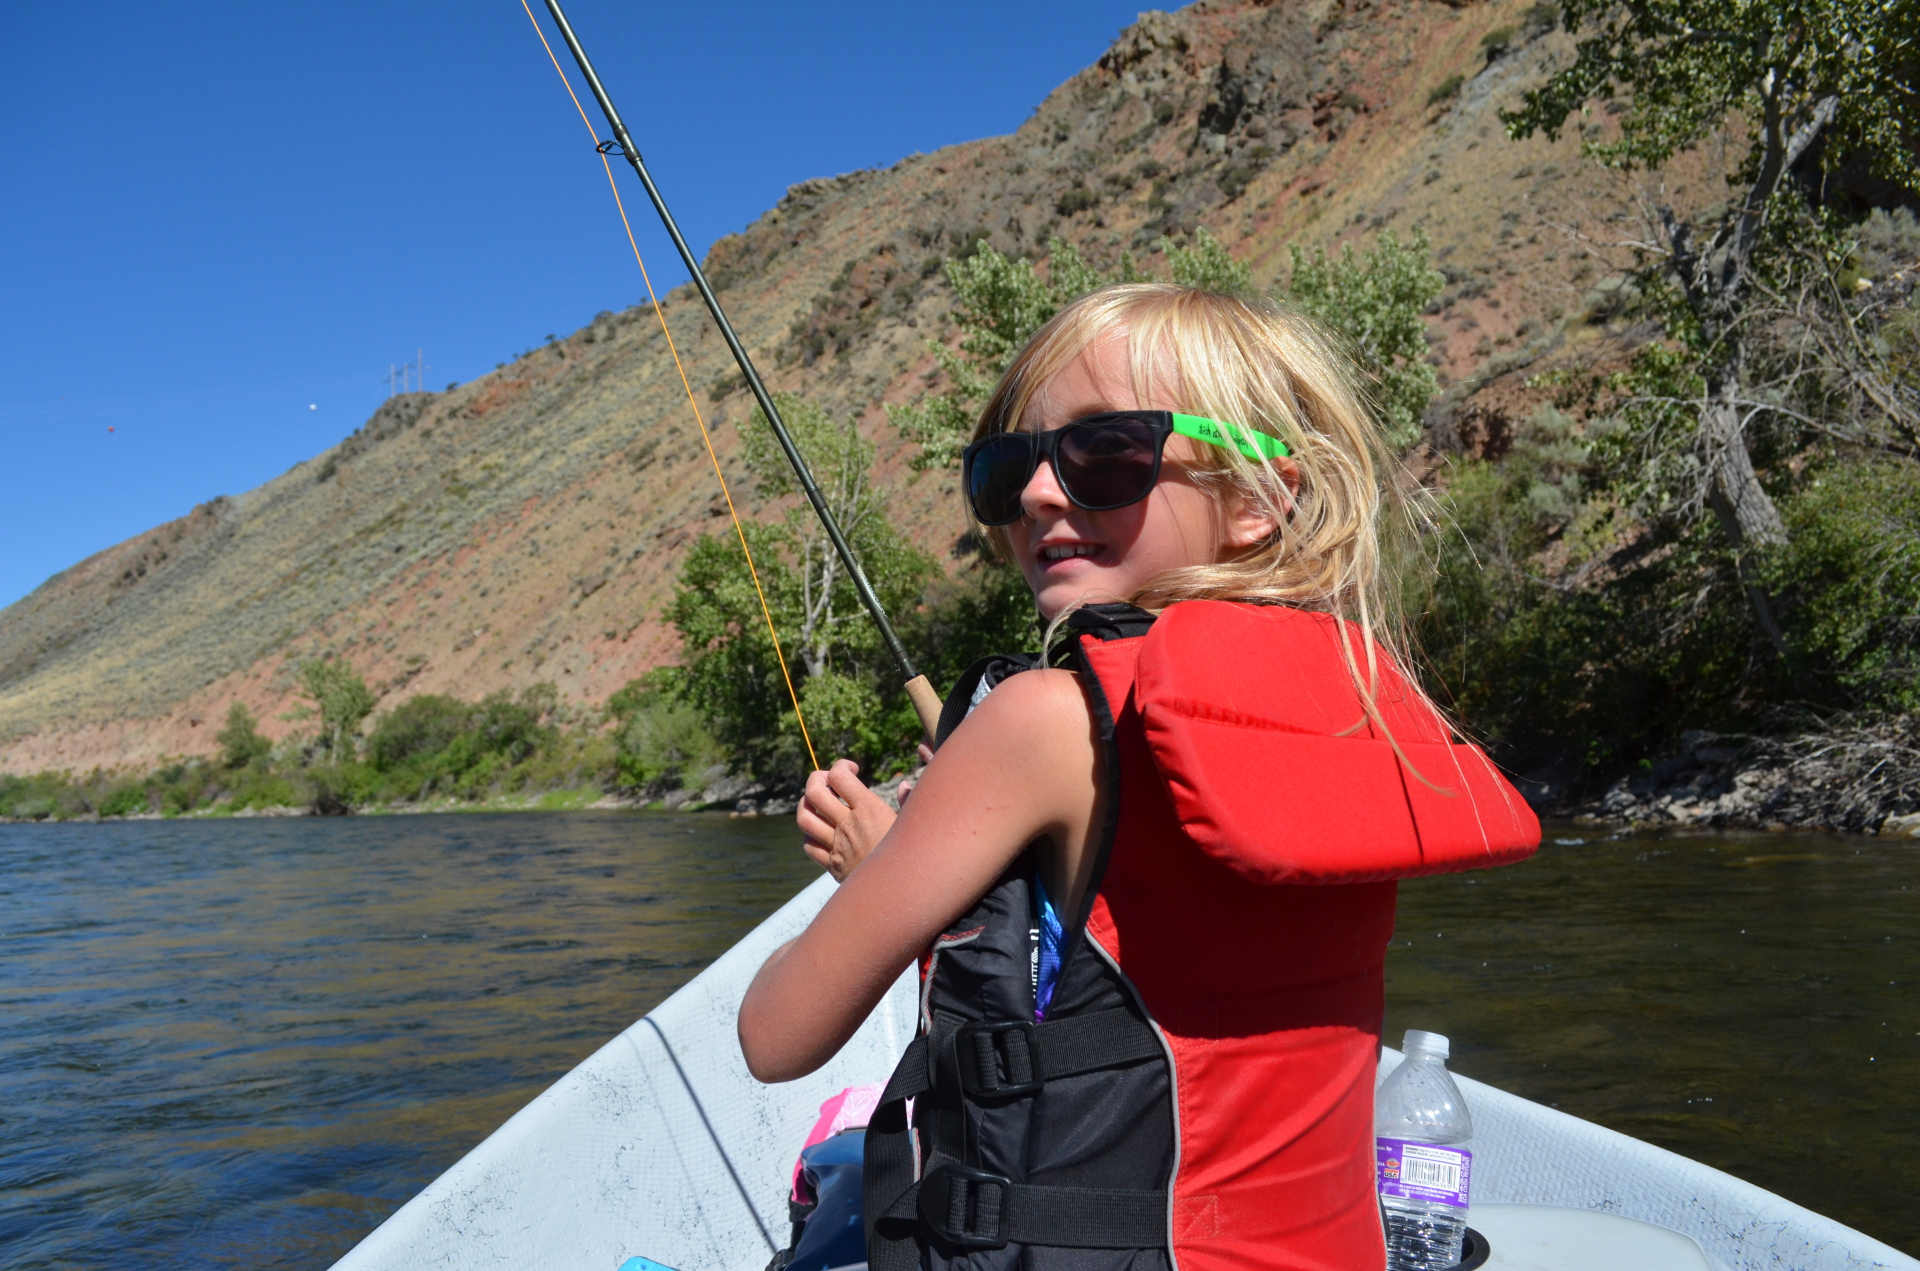 Taylor trying out the fly rod